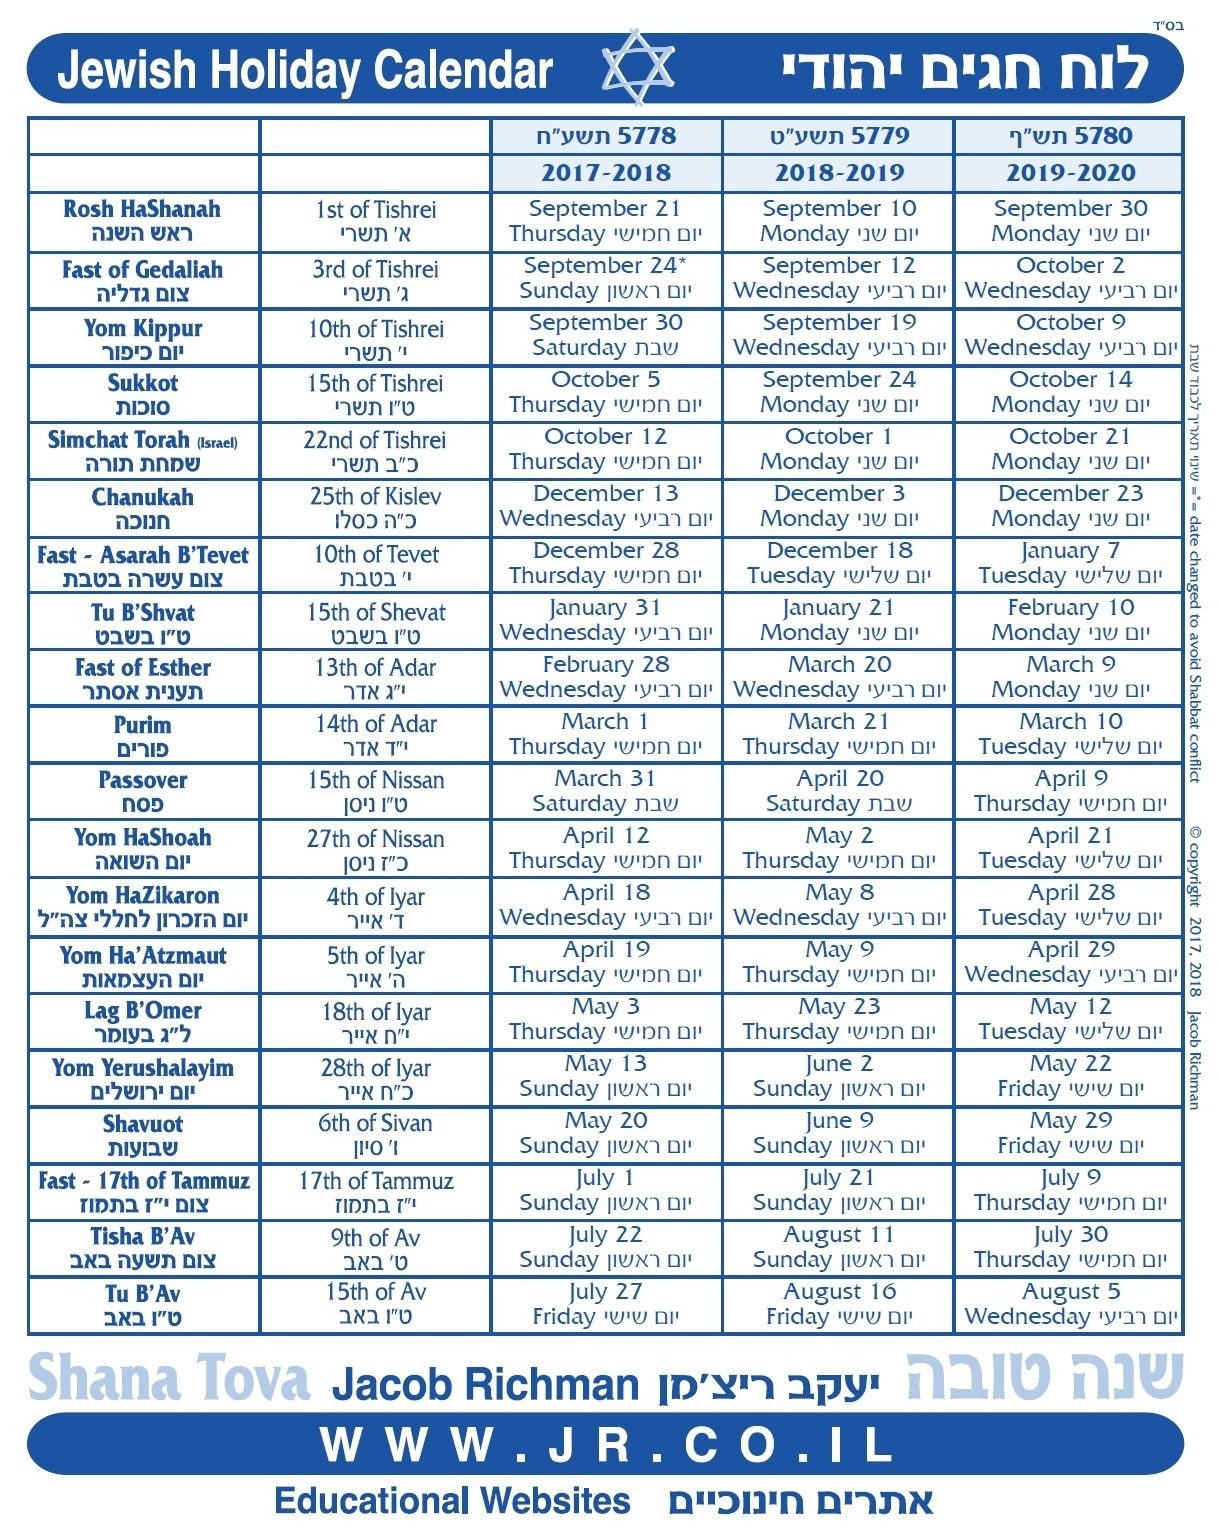 Pin By Jacob Richman On Jedlab Resources | Jewish Holiday-2020 Calendar With Jewish Holidays Printable